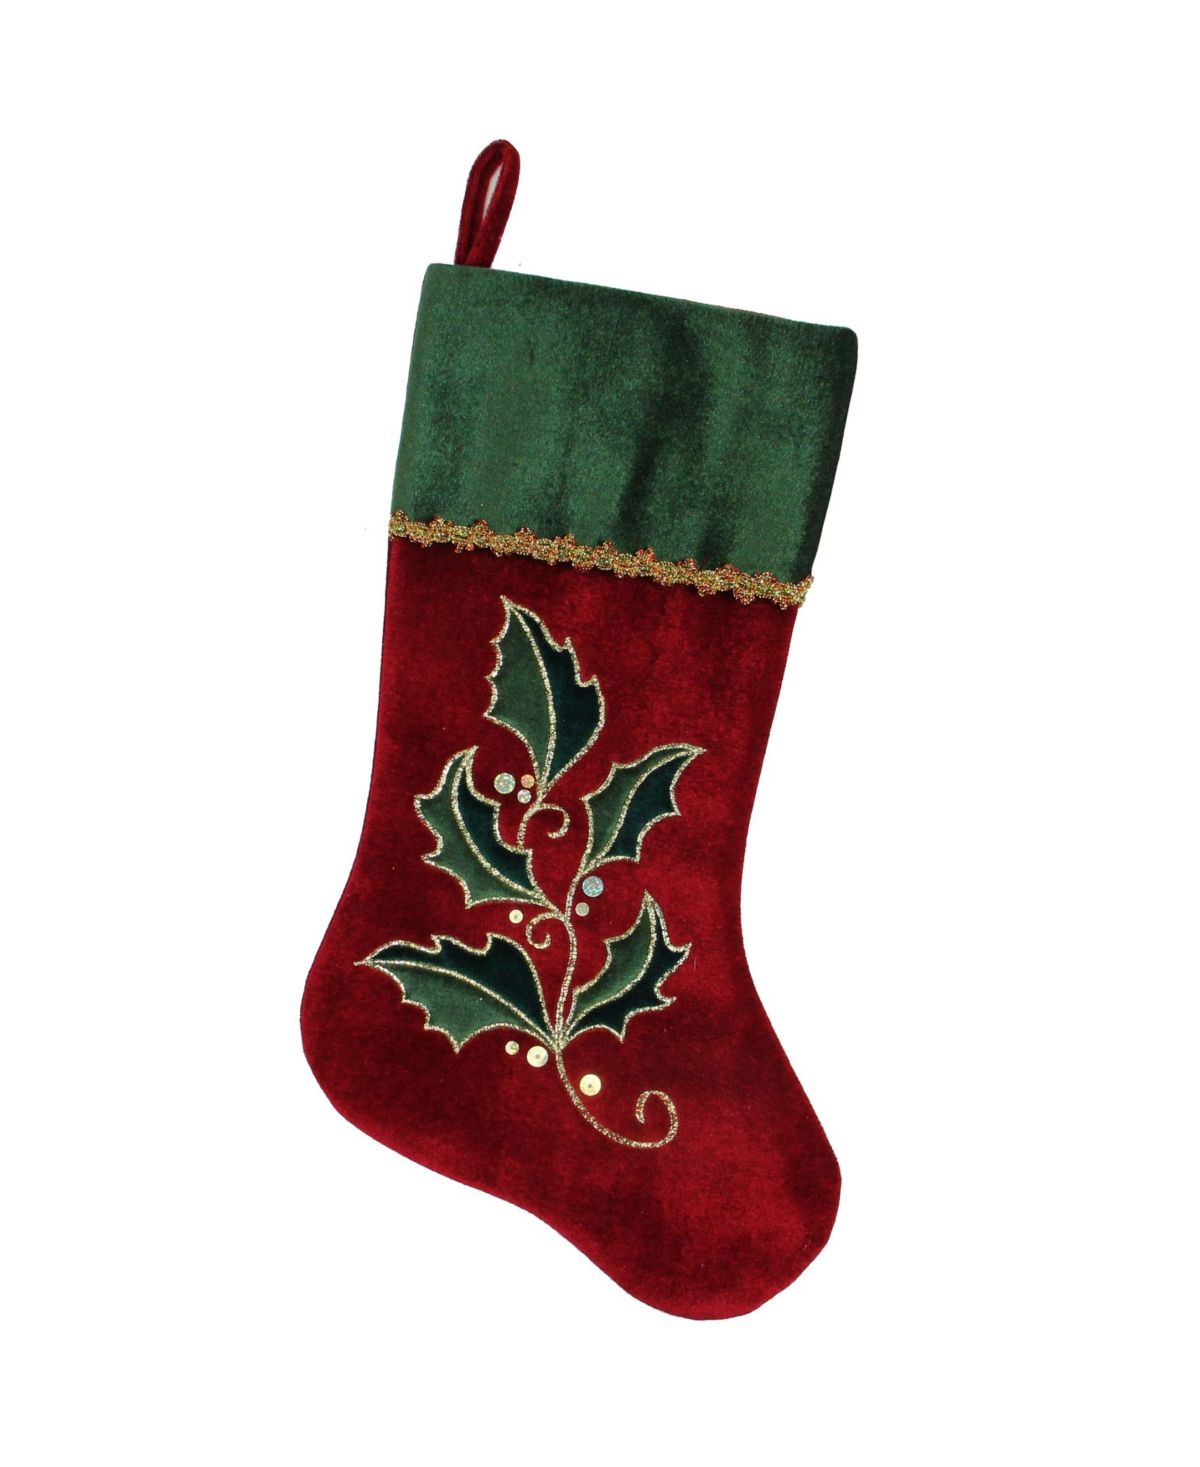 Northlight Holly Embroidered Christmas Stocking With Gold Tone Metallic Trim R Velvet Christmas Stockings Embroidered Christmas Stockings Christmas Stockings